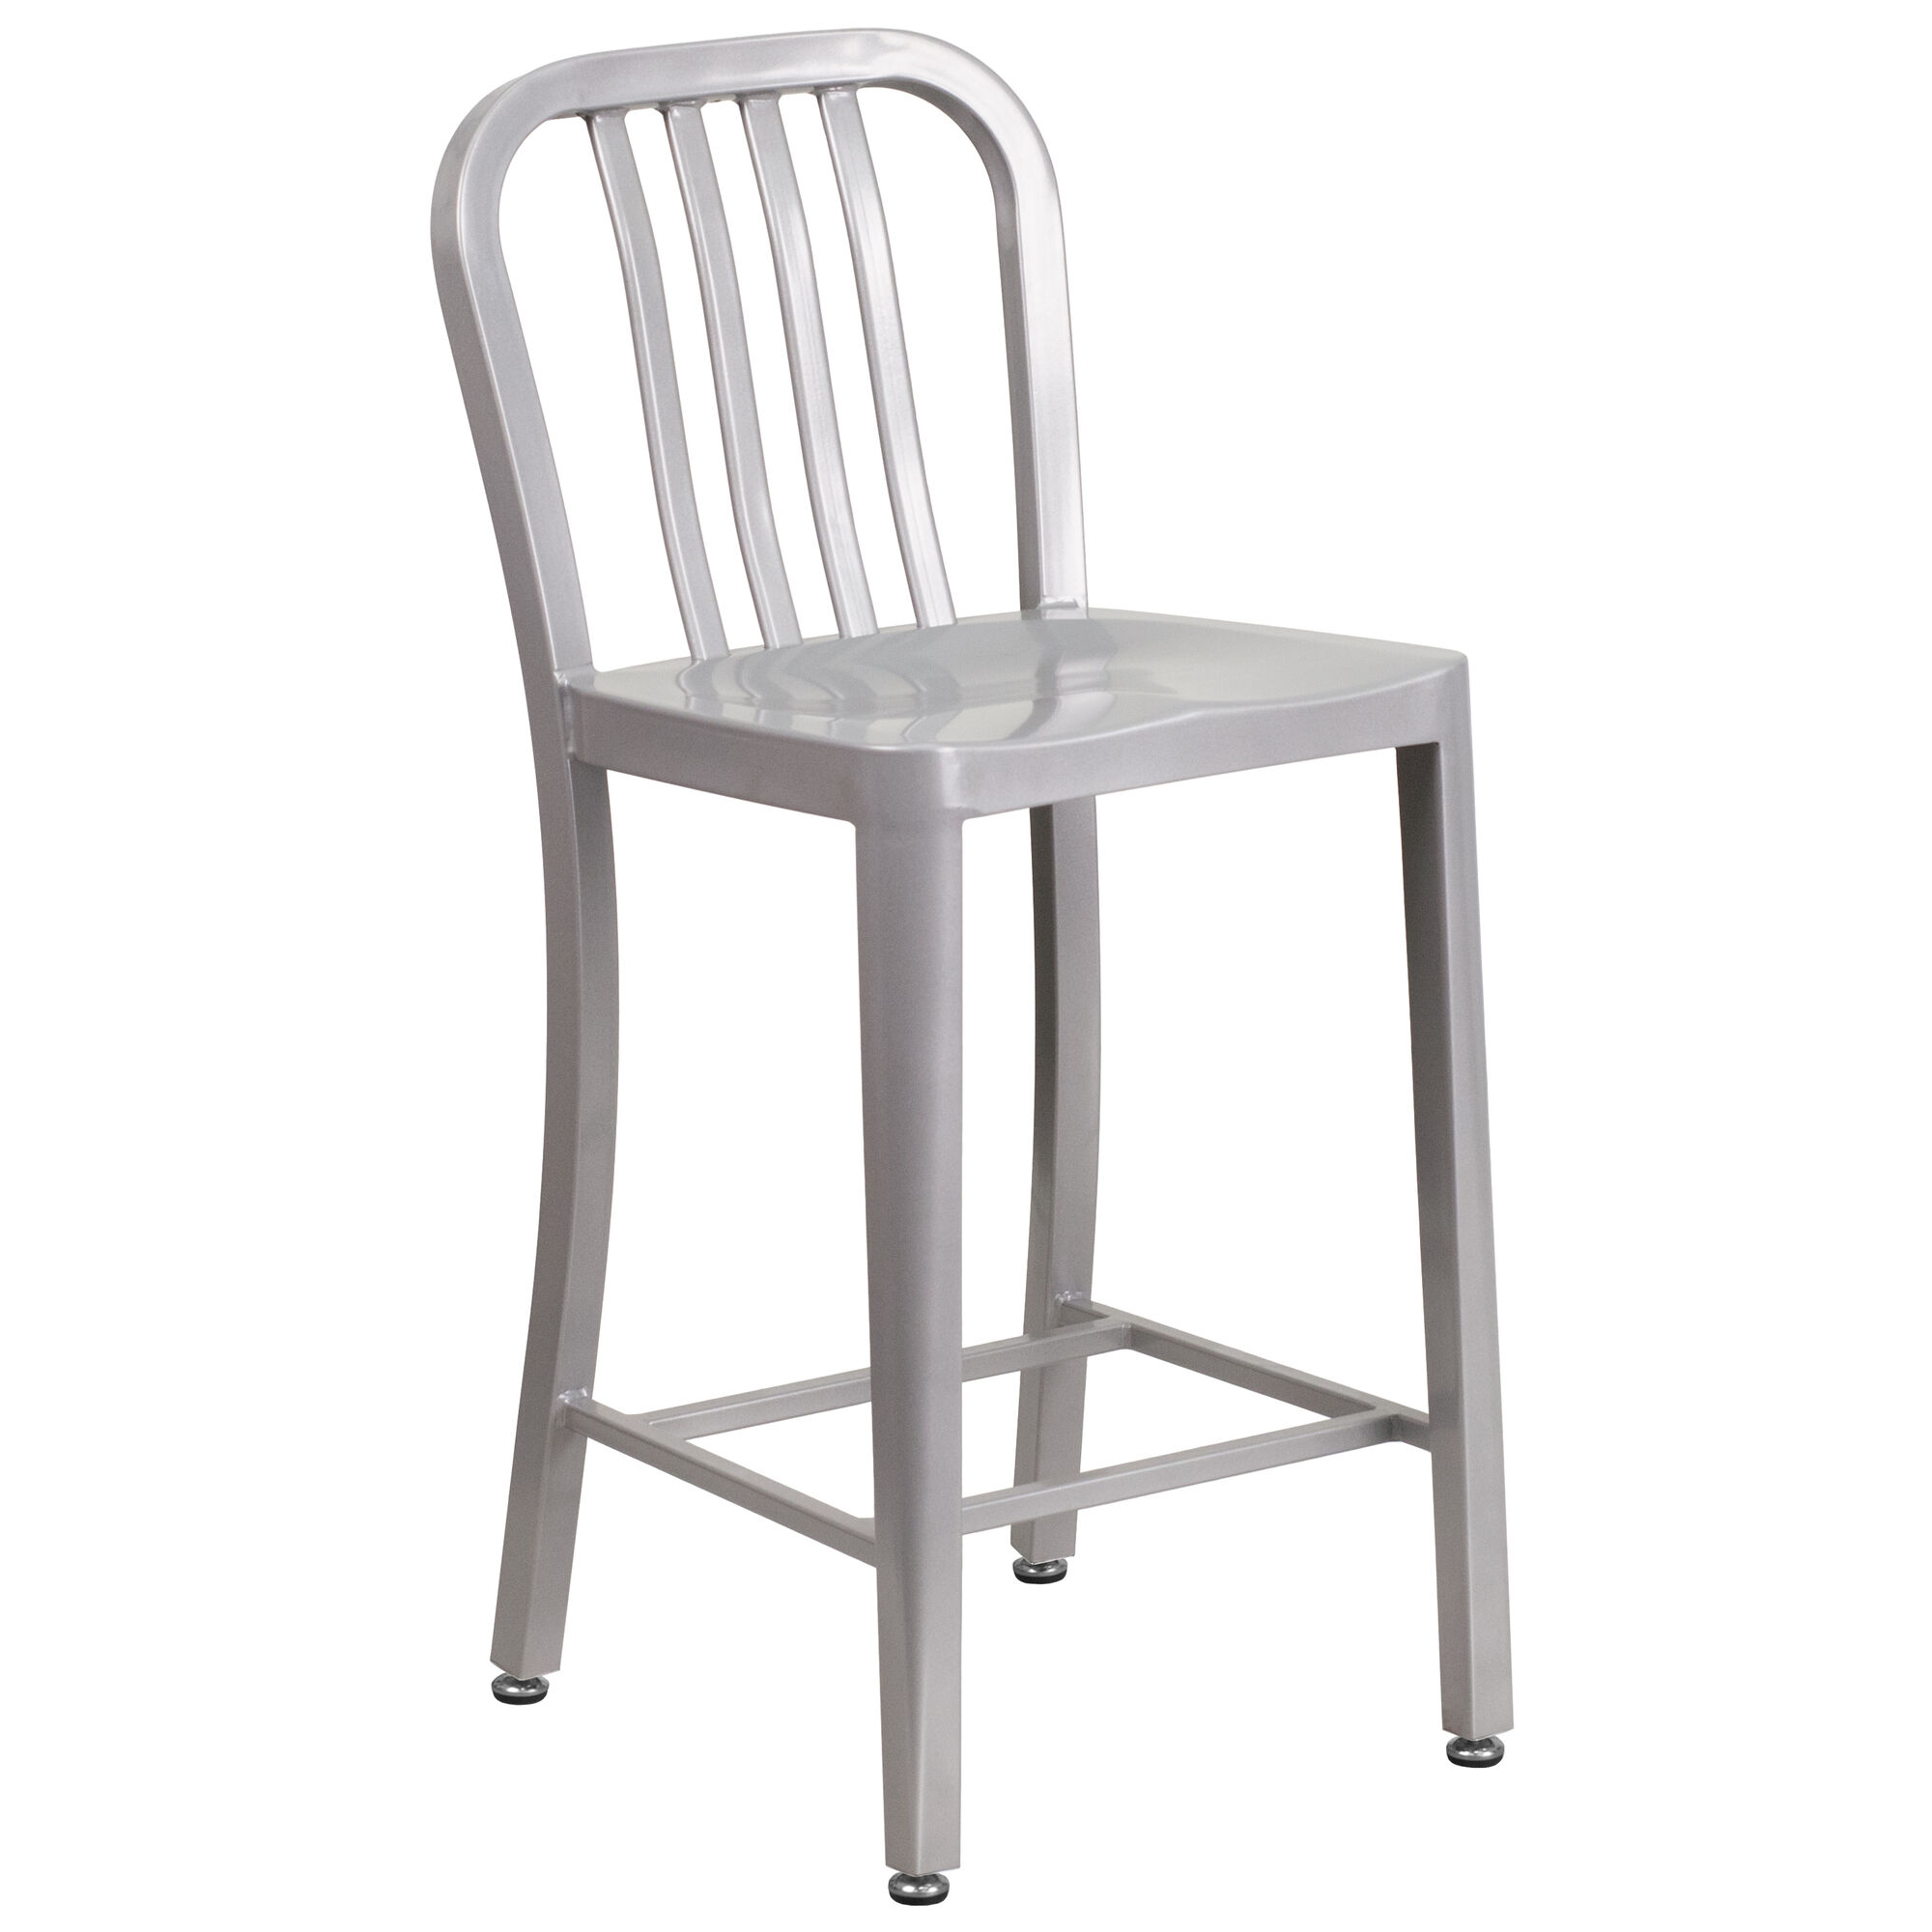 24 Silver Metal Outdoor Stool Ch 61200